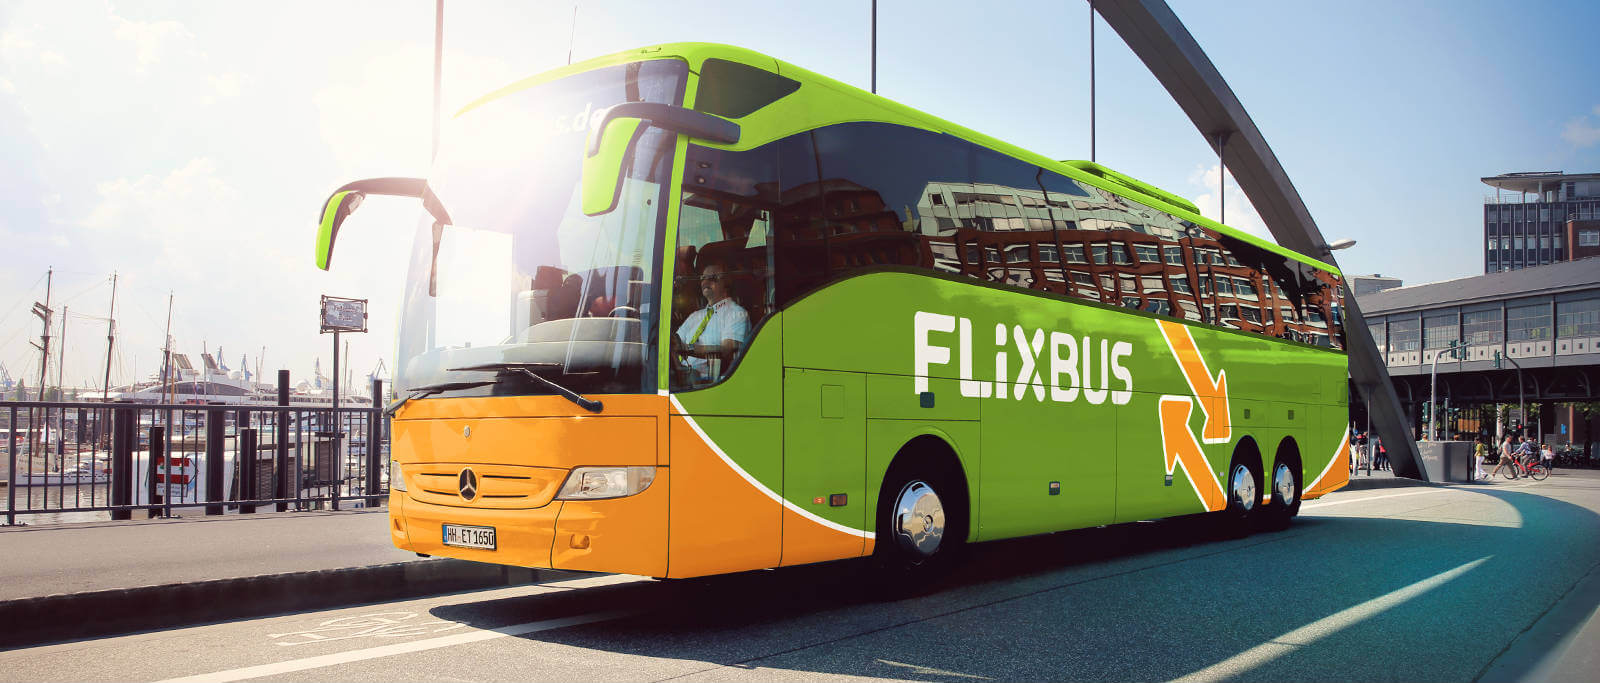 bushaltestellen fahrpl ne f r fernbusse flixbus. Black Bedroom Furniture Sets. Home Design Ideas